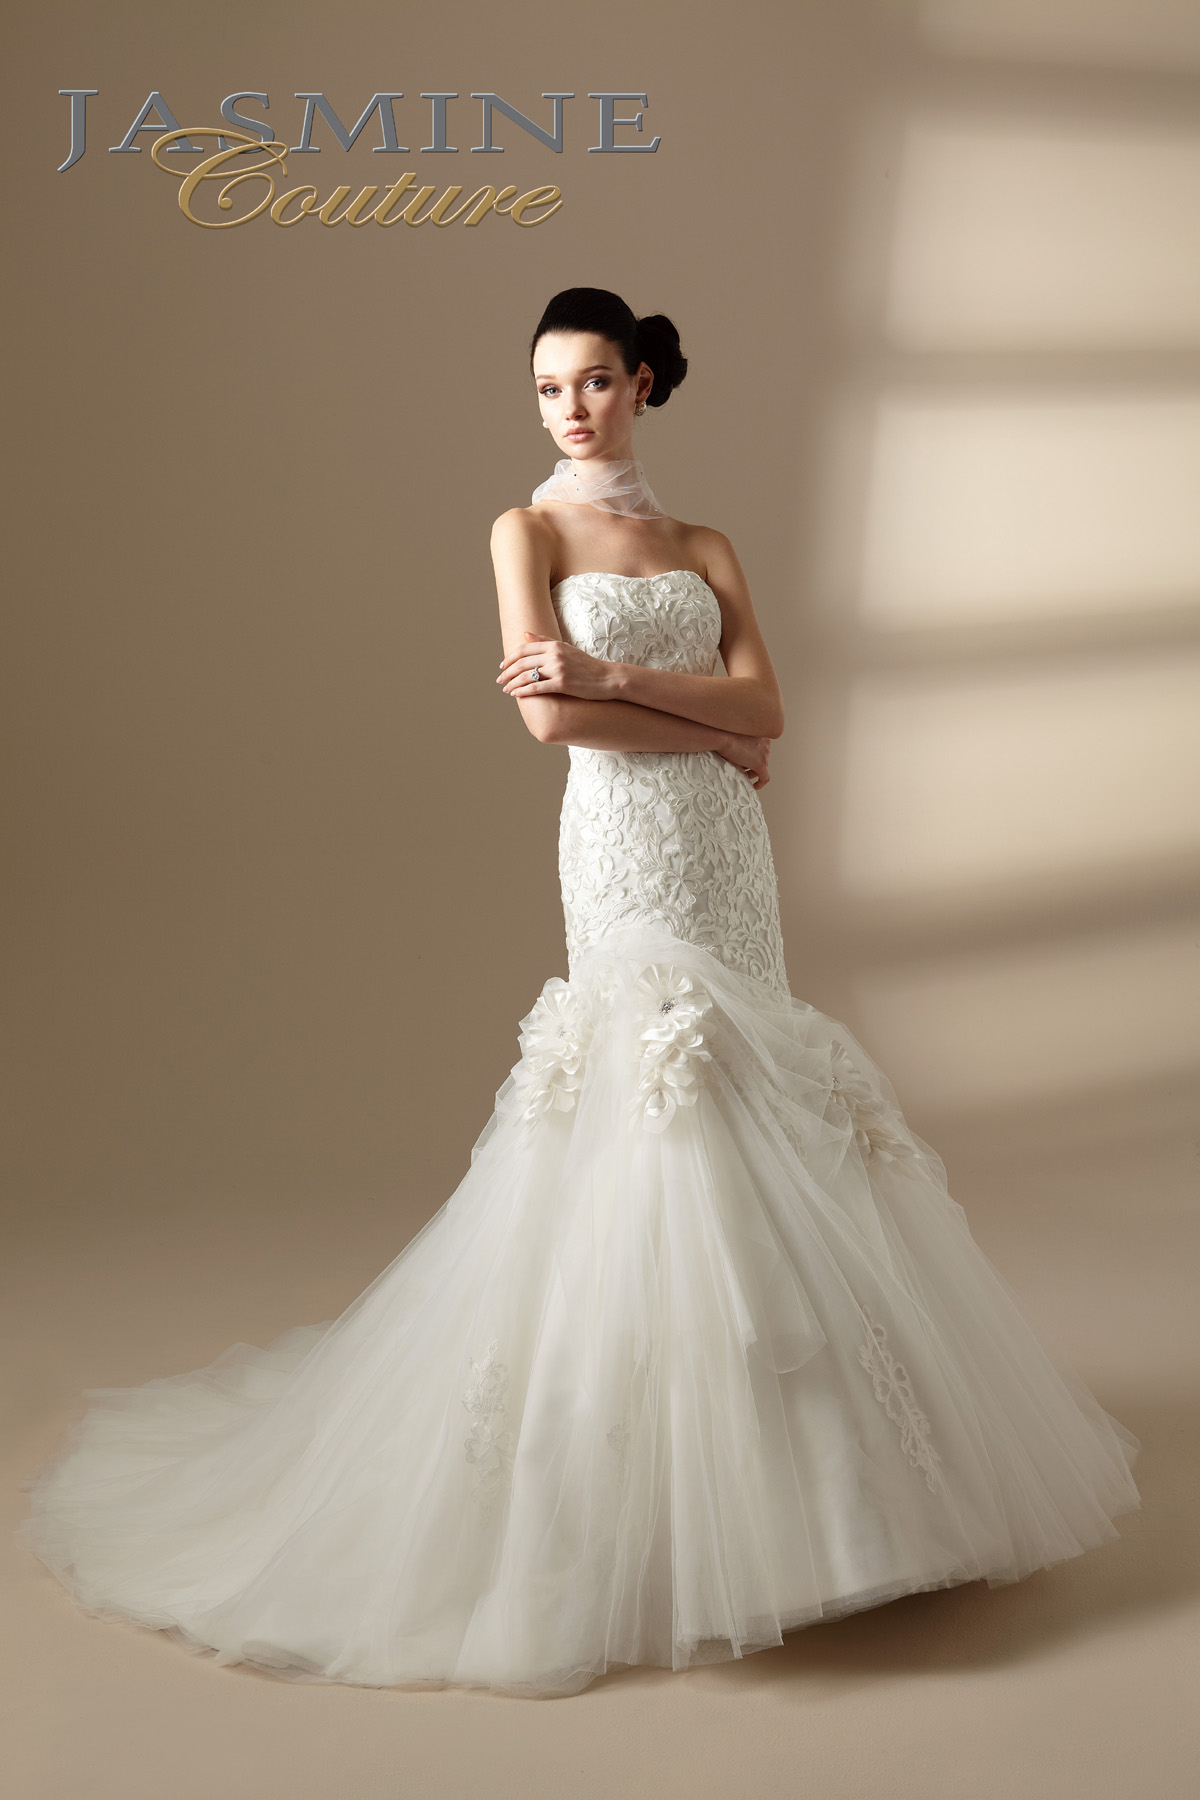 Jasmine Couture Wedding Gowns